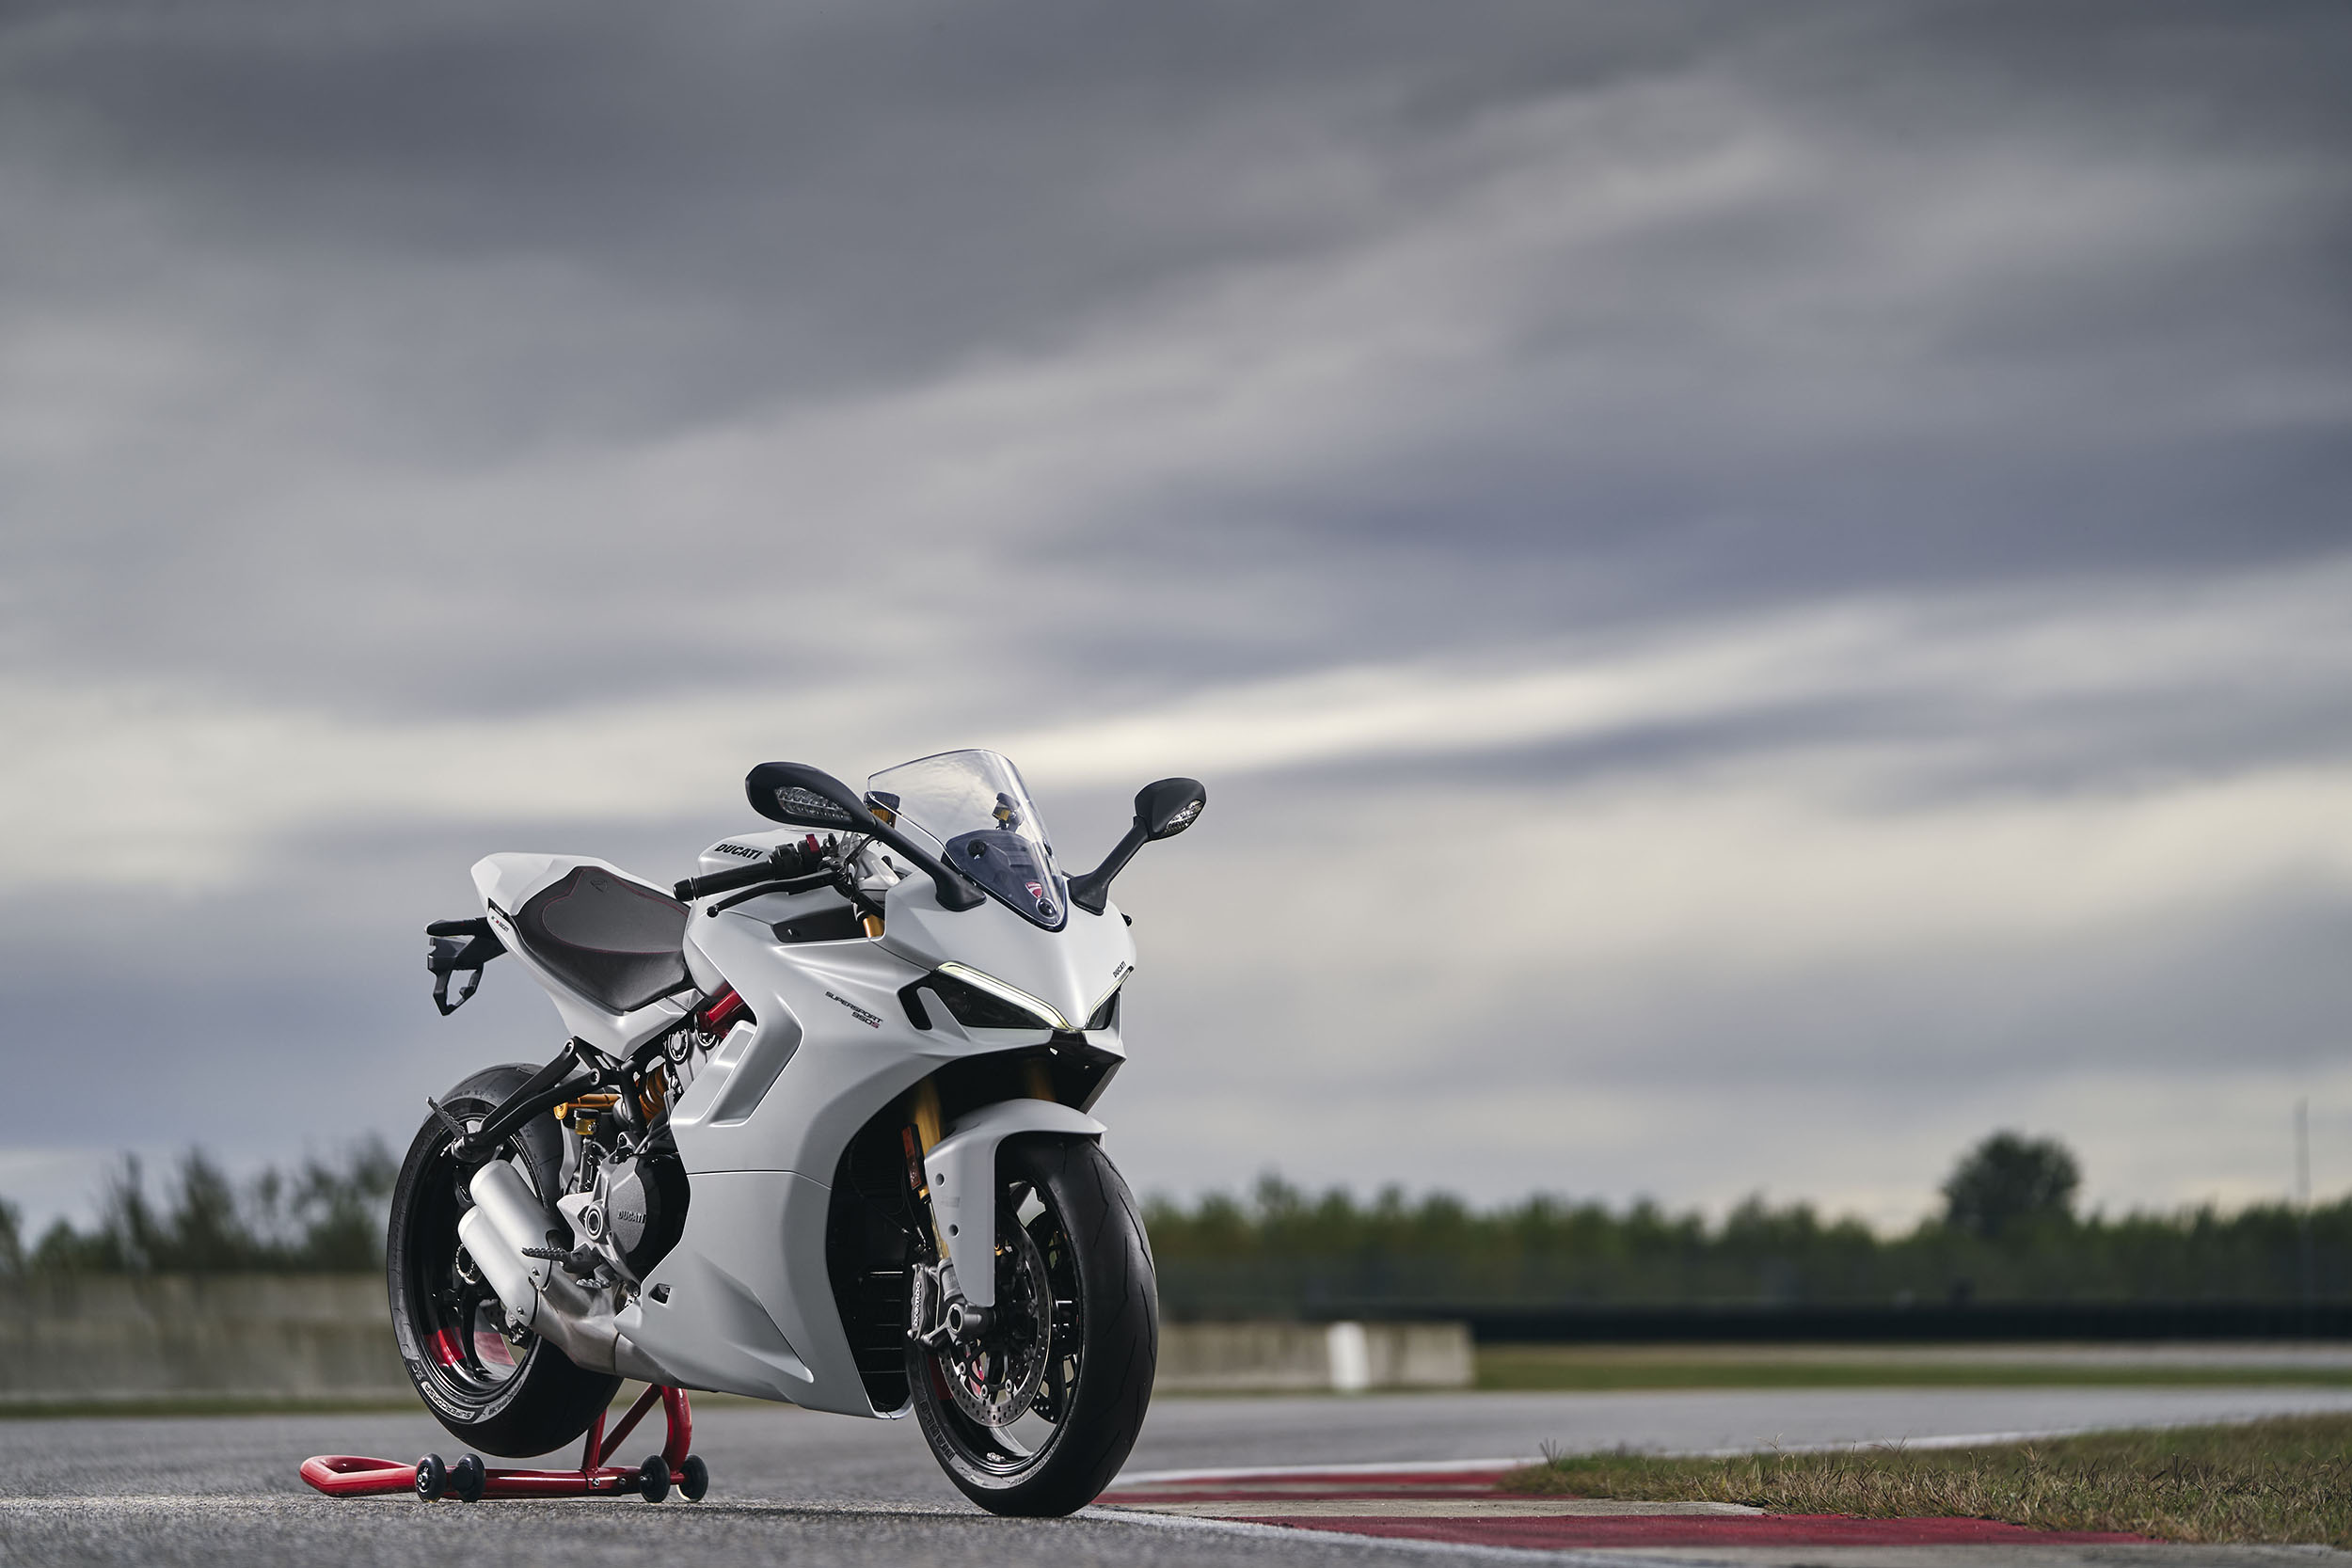 2021 DUCATI_SUPERSPORT_950_S_AMBIENCE _19__UC210970_High